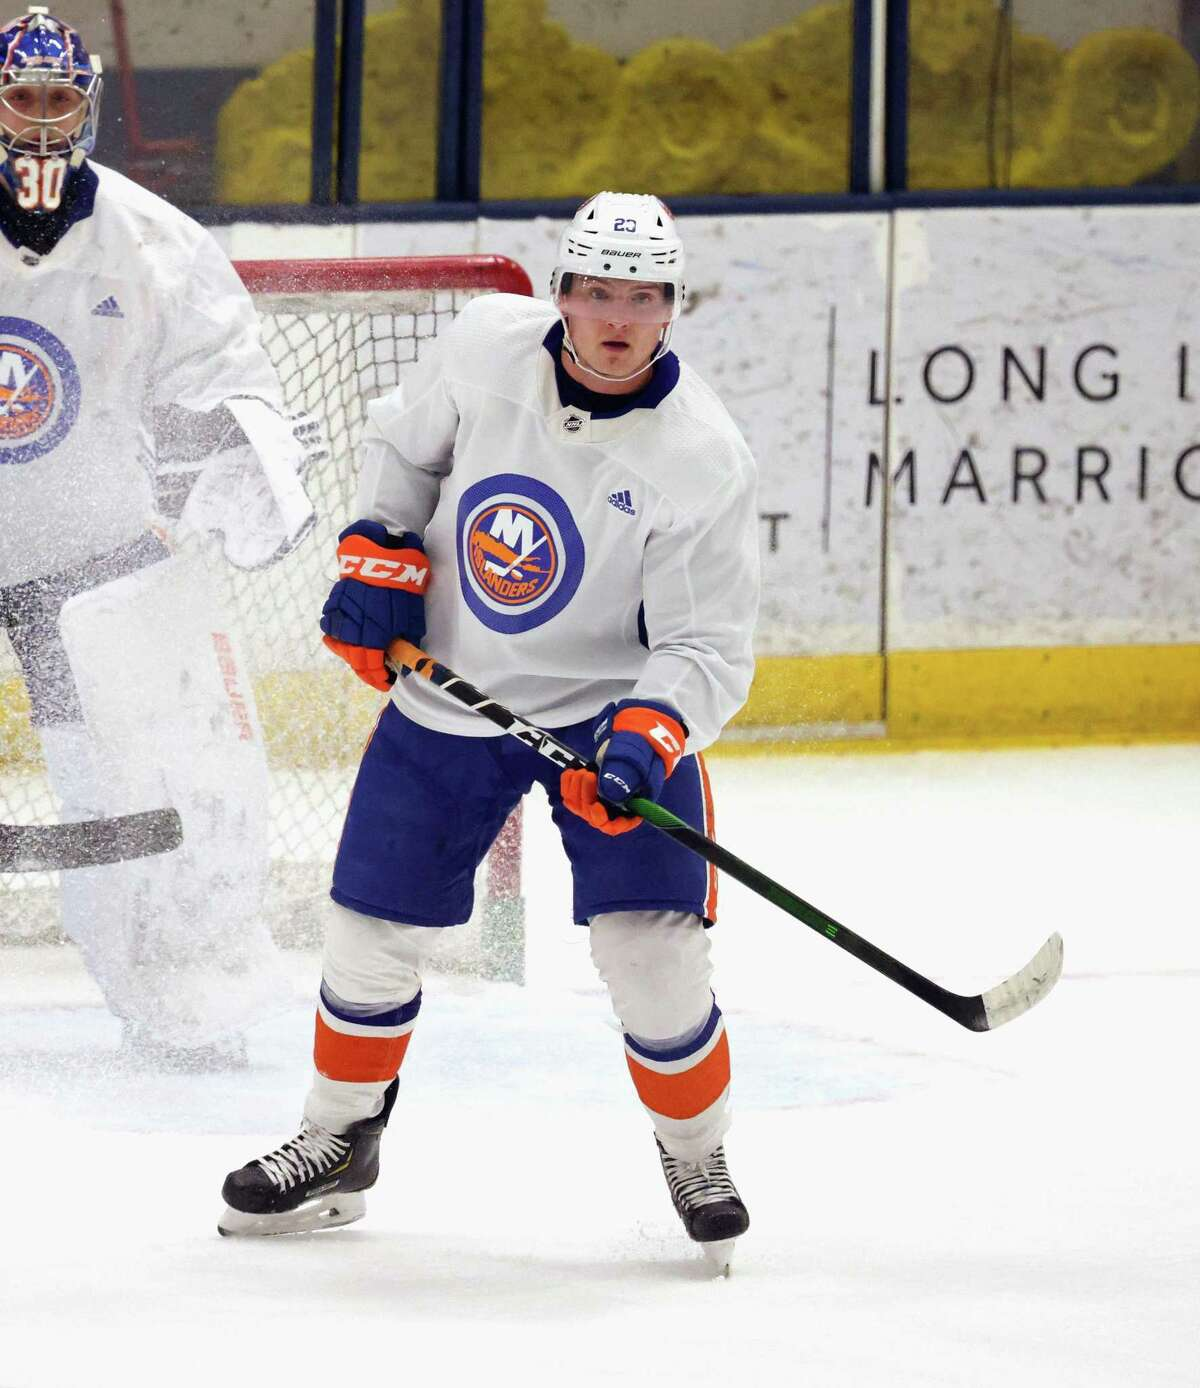 Former Sound Tigers forward Kieffer Bellows (20) earned a spot on the Islanders taxi squad.